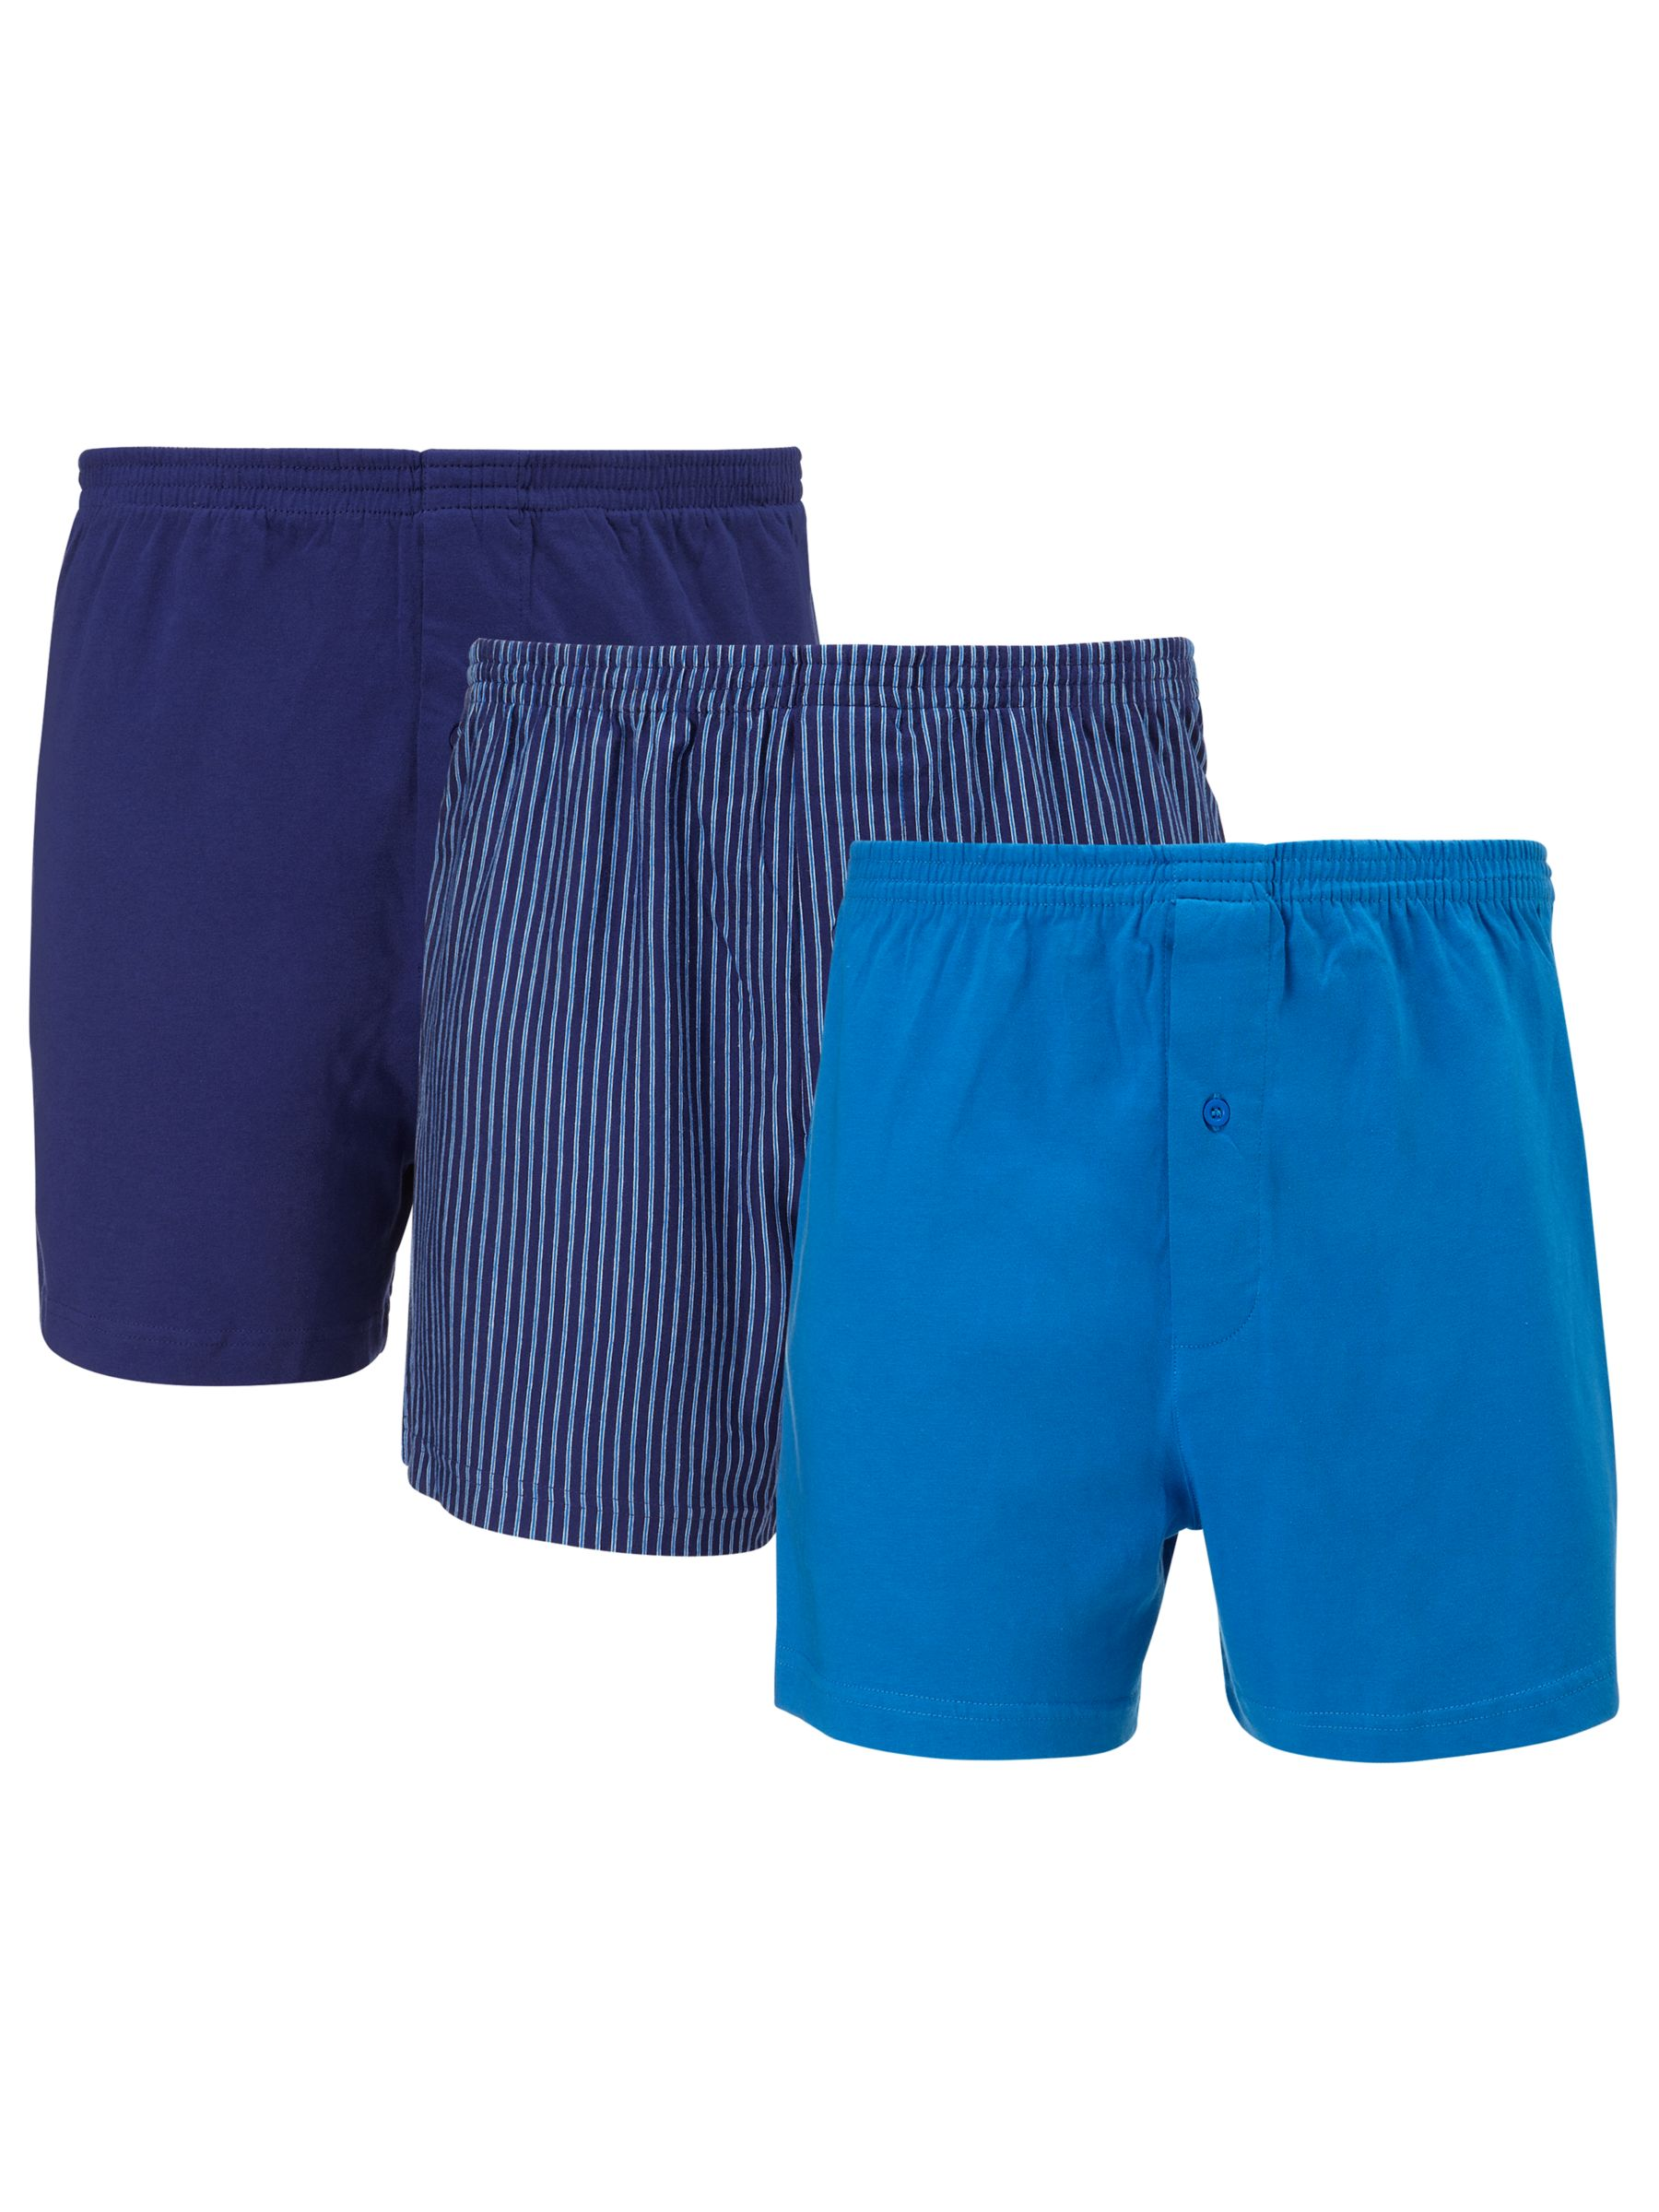 John Lewis Organic Jersey Cotton Boxers, Pack of 3, Blue